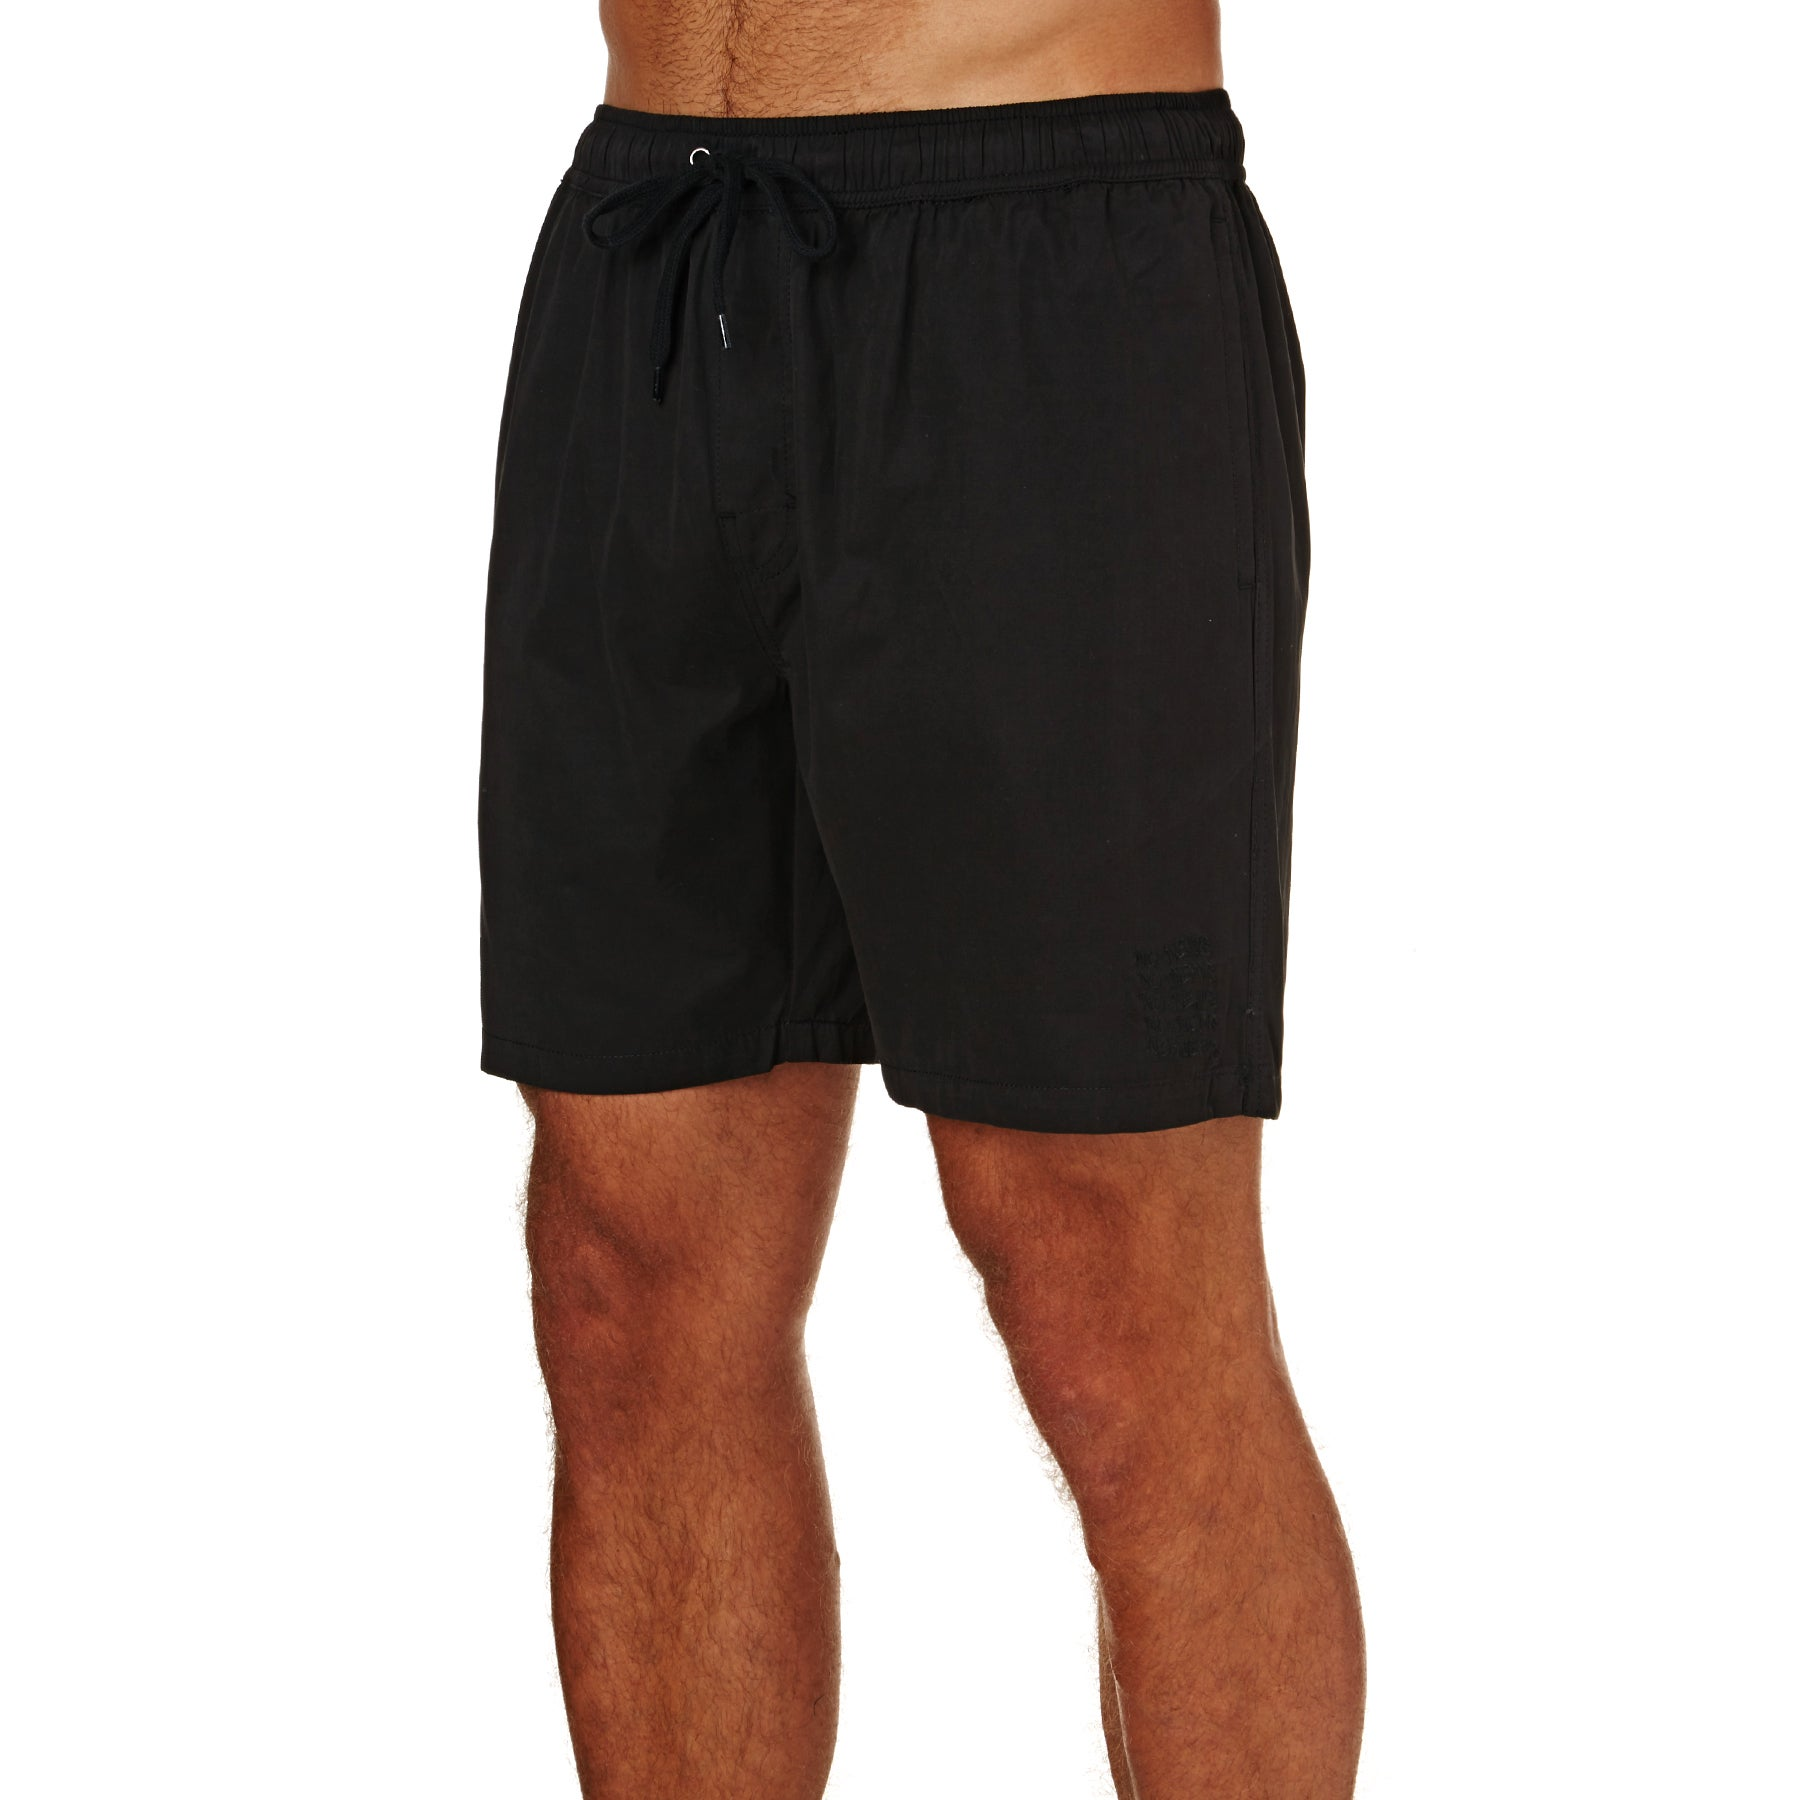 No News Trinity Beach Spazier-Shorts - Vintage Black